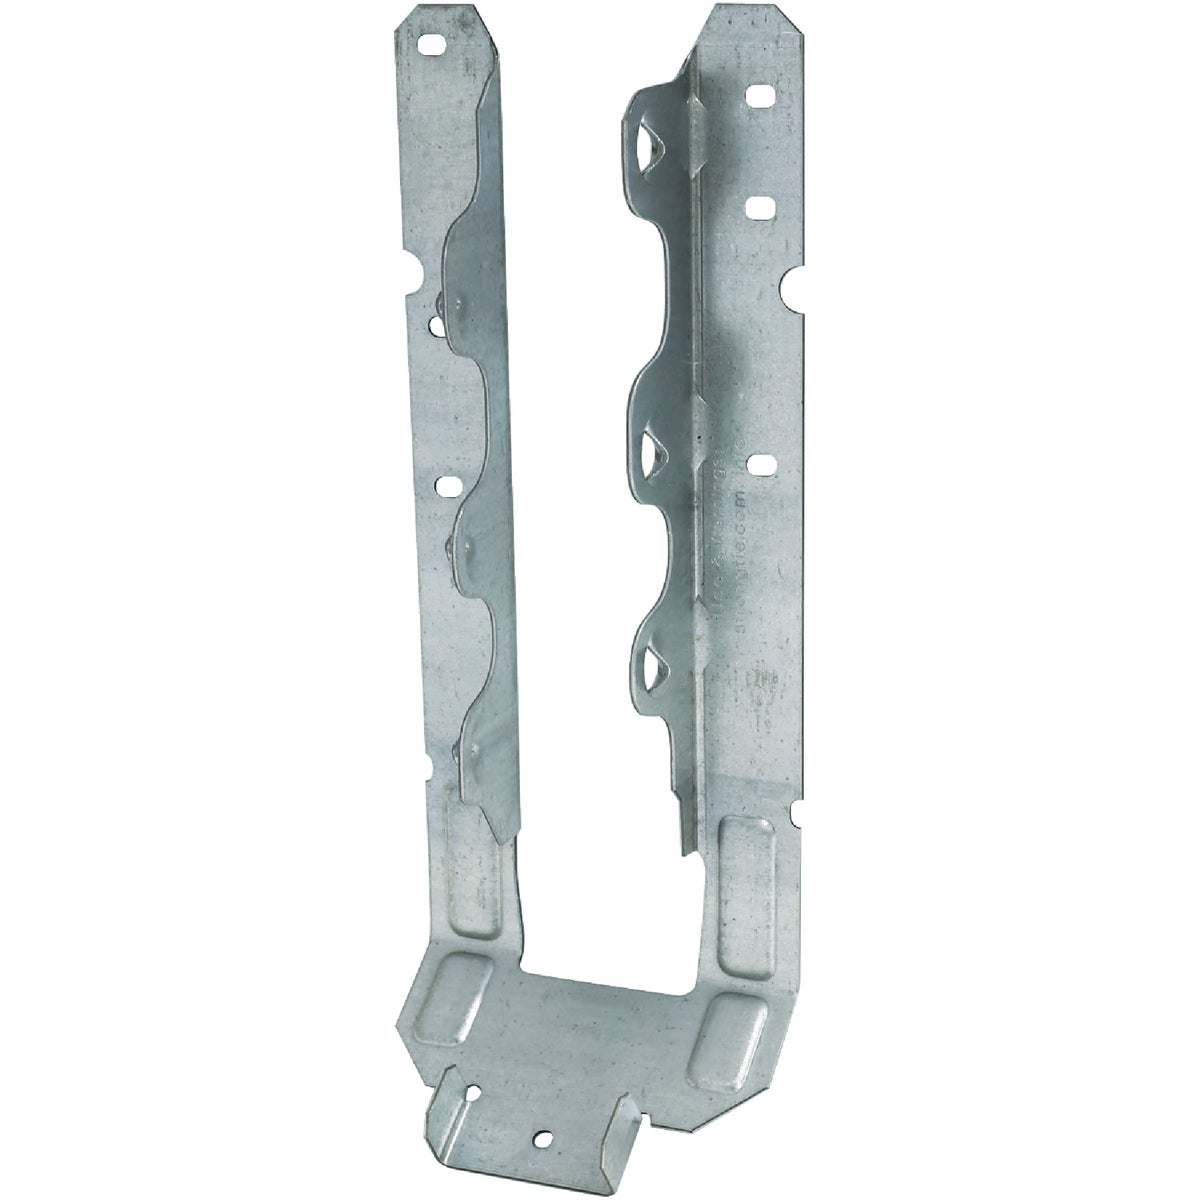 2X10 RAFTER HANGER - LRU210 by Simpson Strong Tie